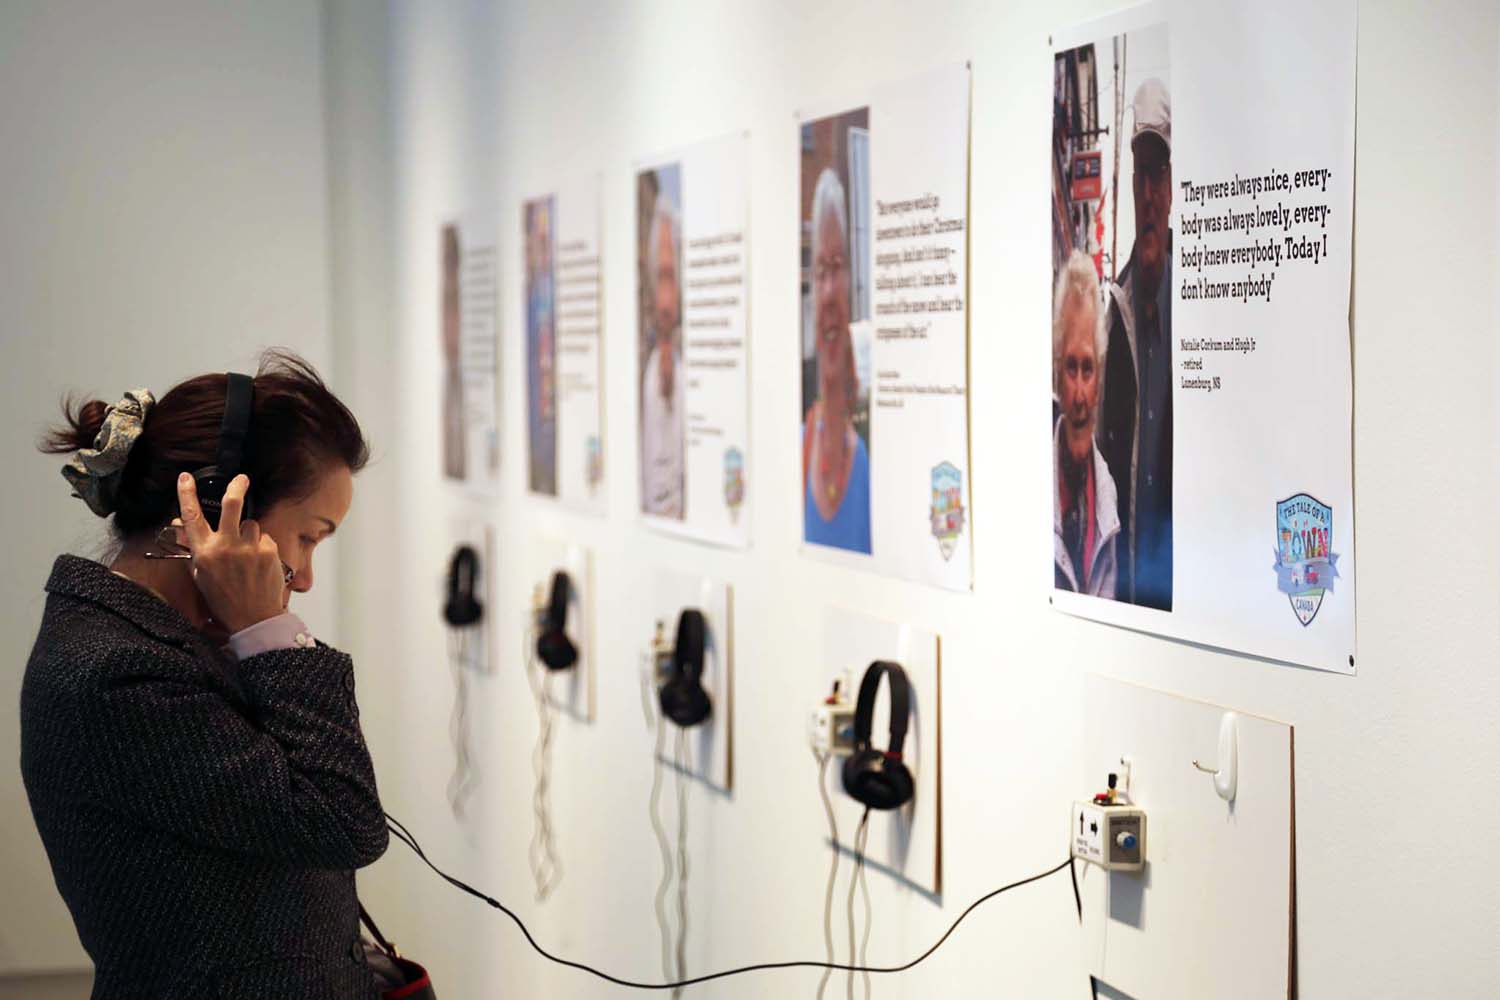 The Tale of a Town Oakville Interviews' Audio Listening Wall Station with Audience Member